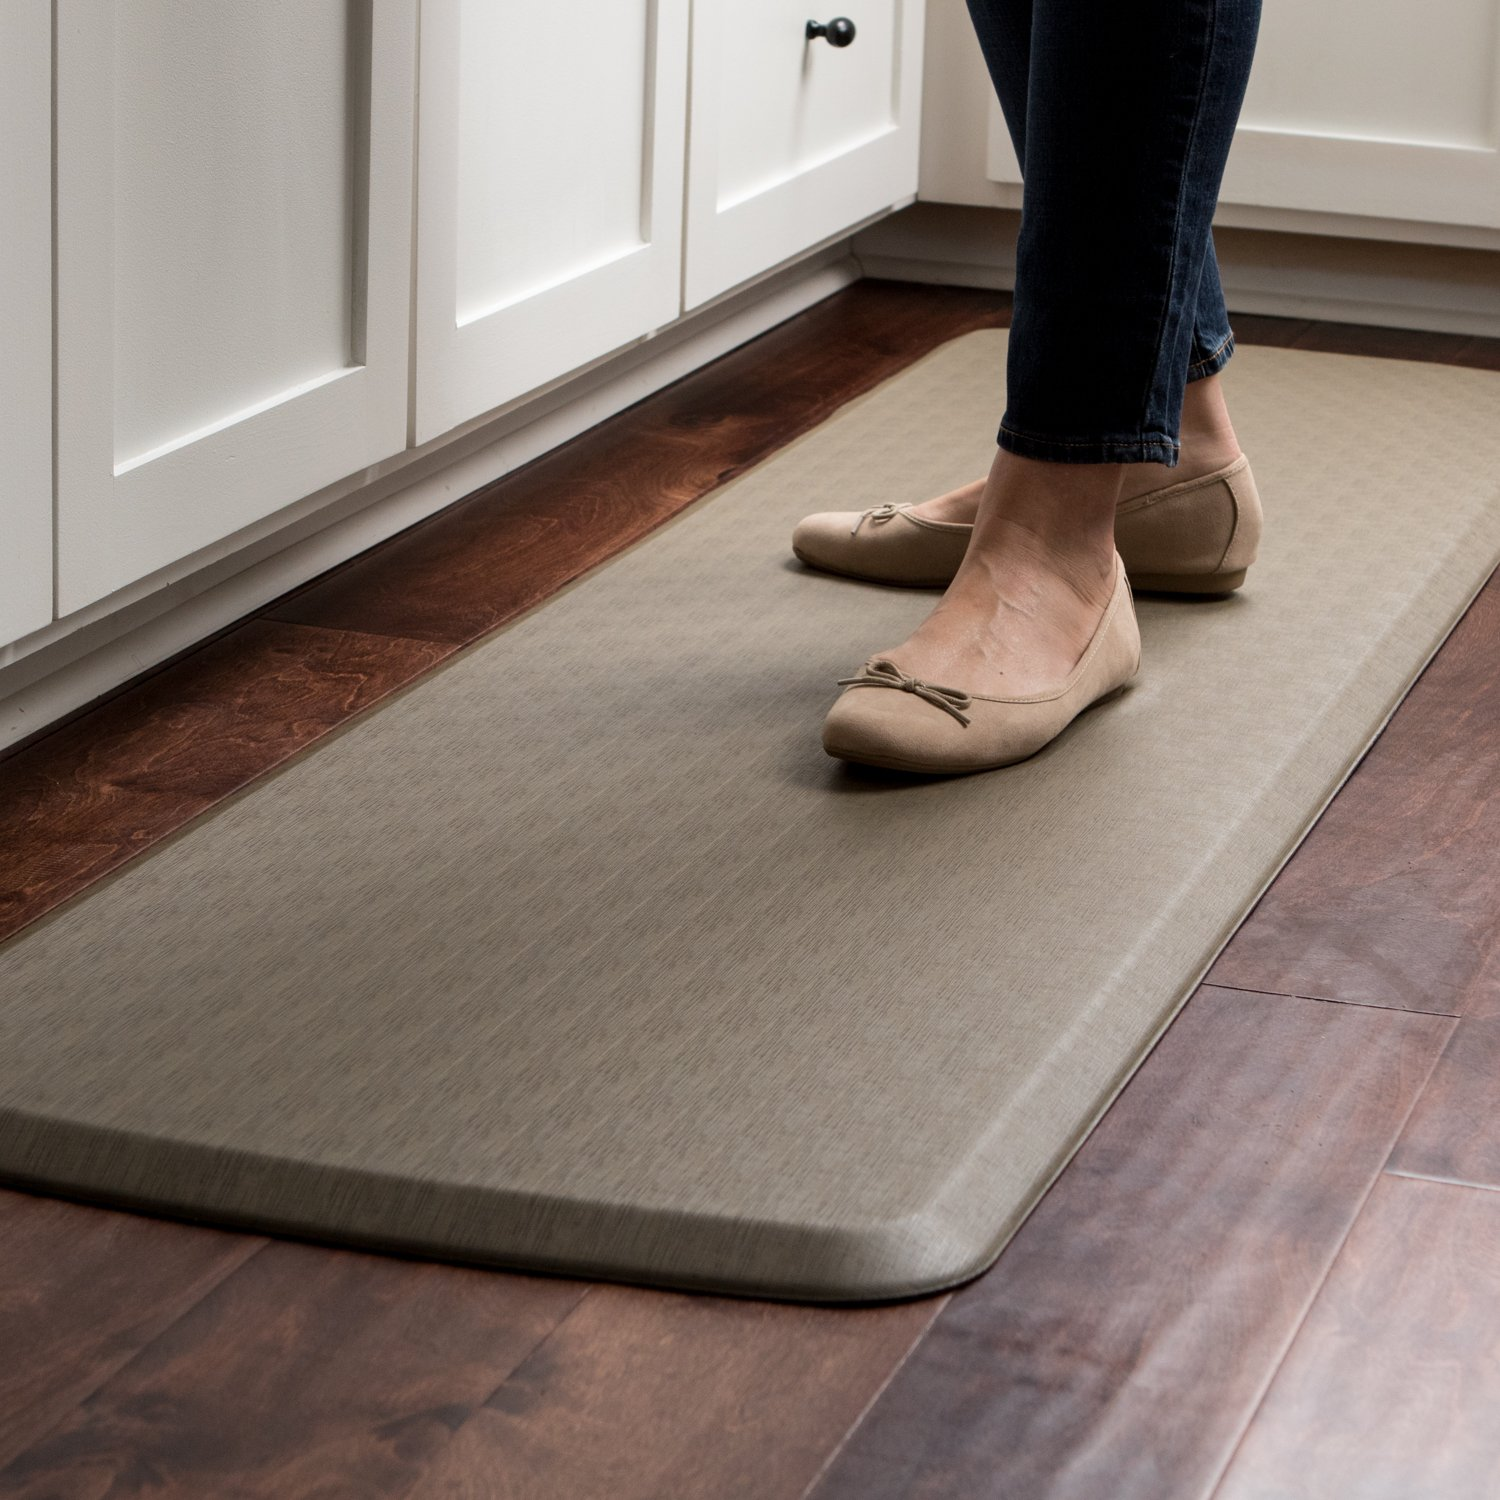 """GelPro Elite Premier Anti-Fatigue Kitchen Comfort Floor Mat, 20x72"""", Vintage Leather Slate Stain Resistant Surface with Therapeutic Gel and Energy-return Foam for Health and Wellness by GelPro (Image #6)"""